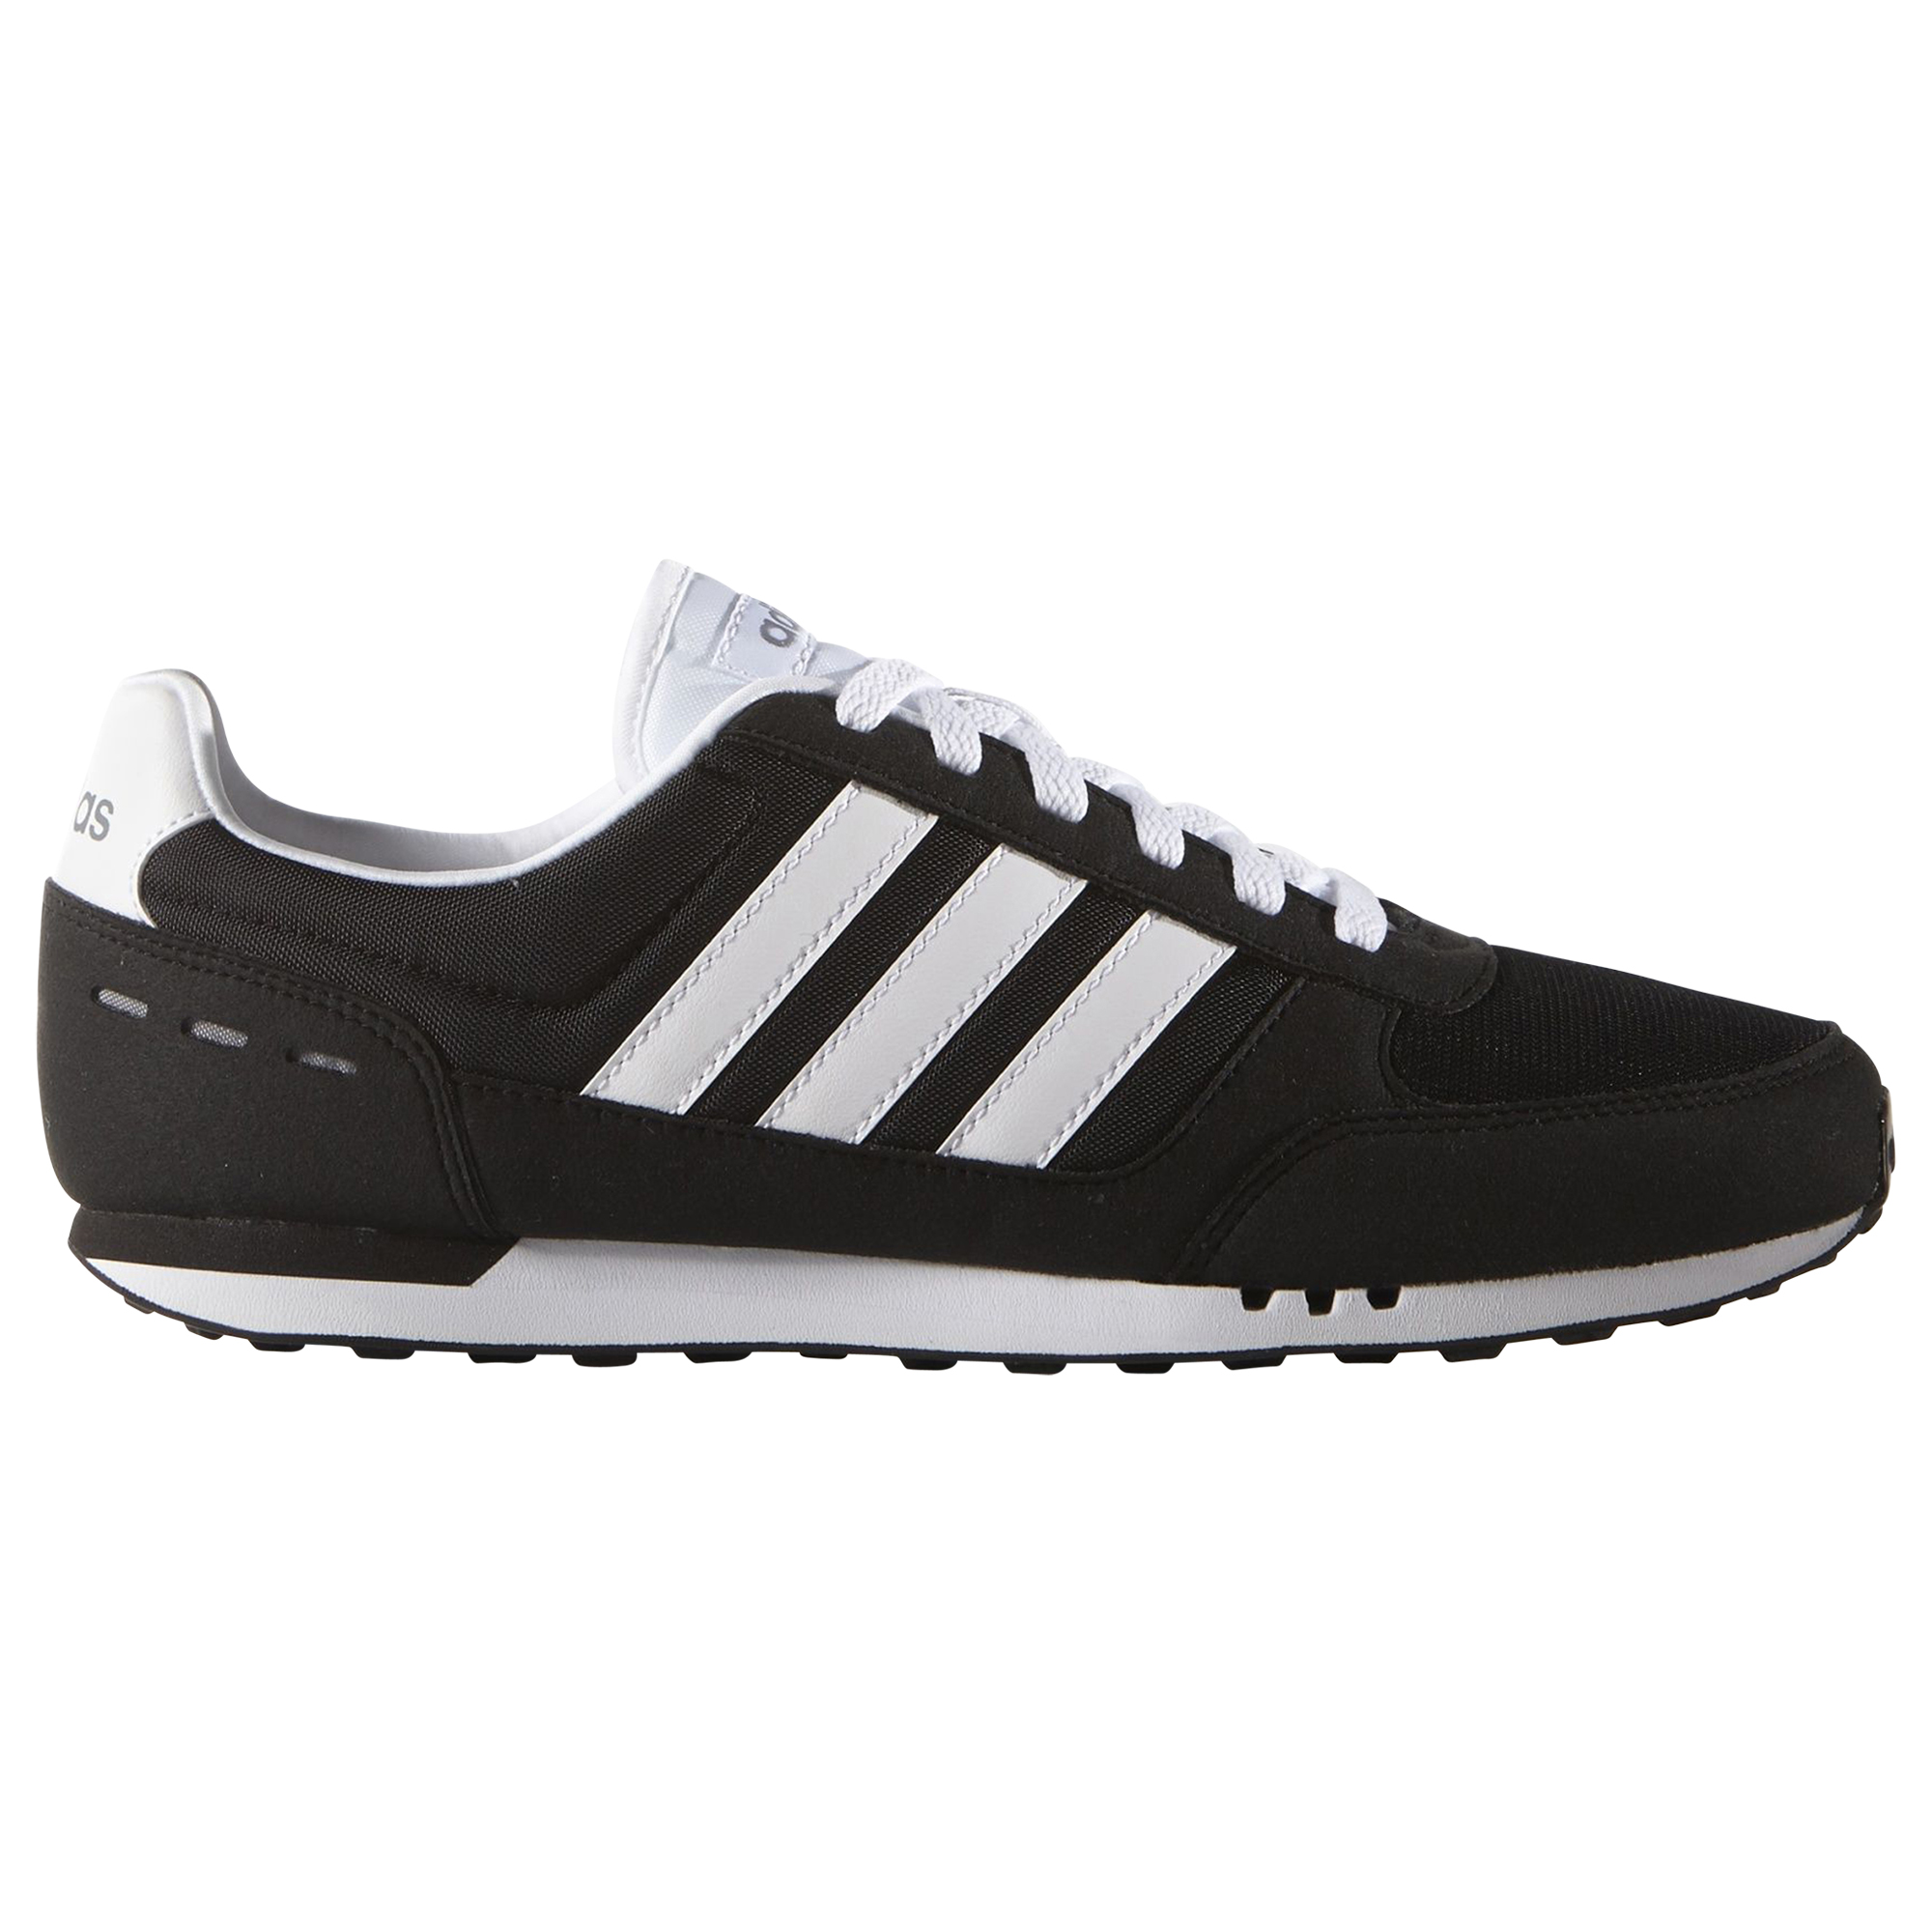 adidas neo city racer schuhe turnschuhe sneaker damen herren f99329 schwarz ebay. Black Bedroom Furniture Sets. Home Design Ideas